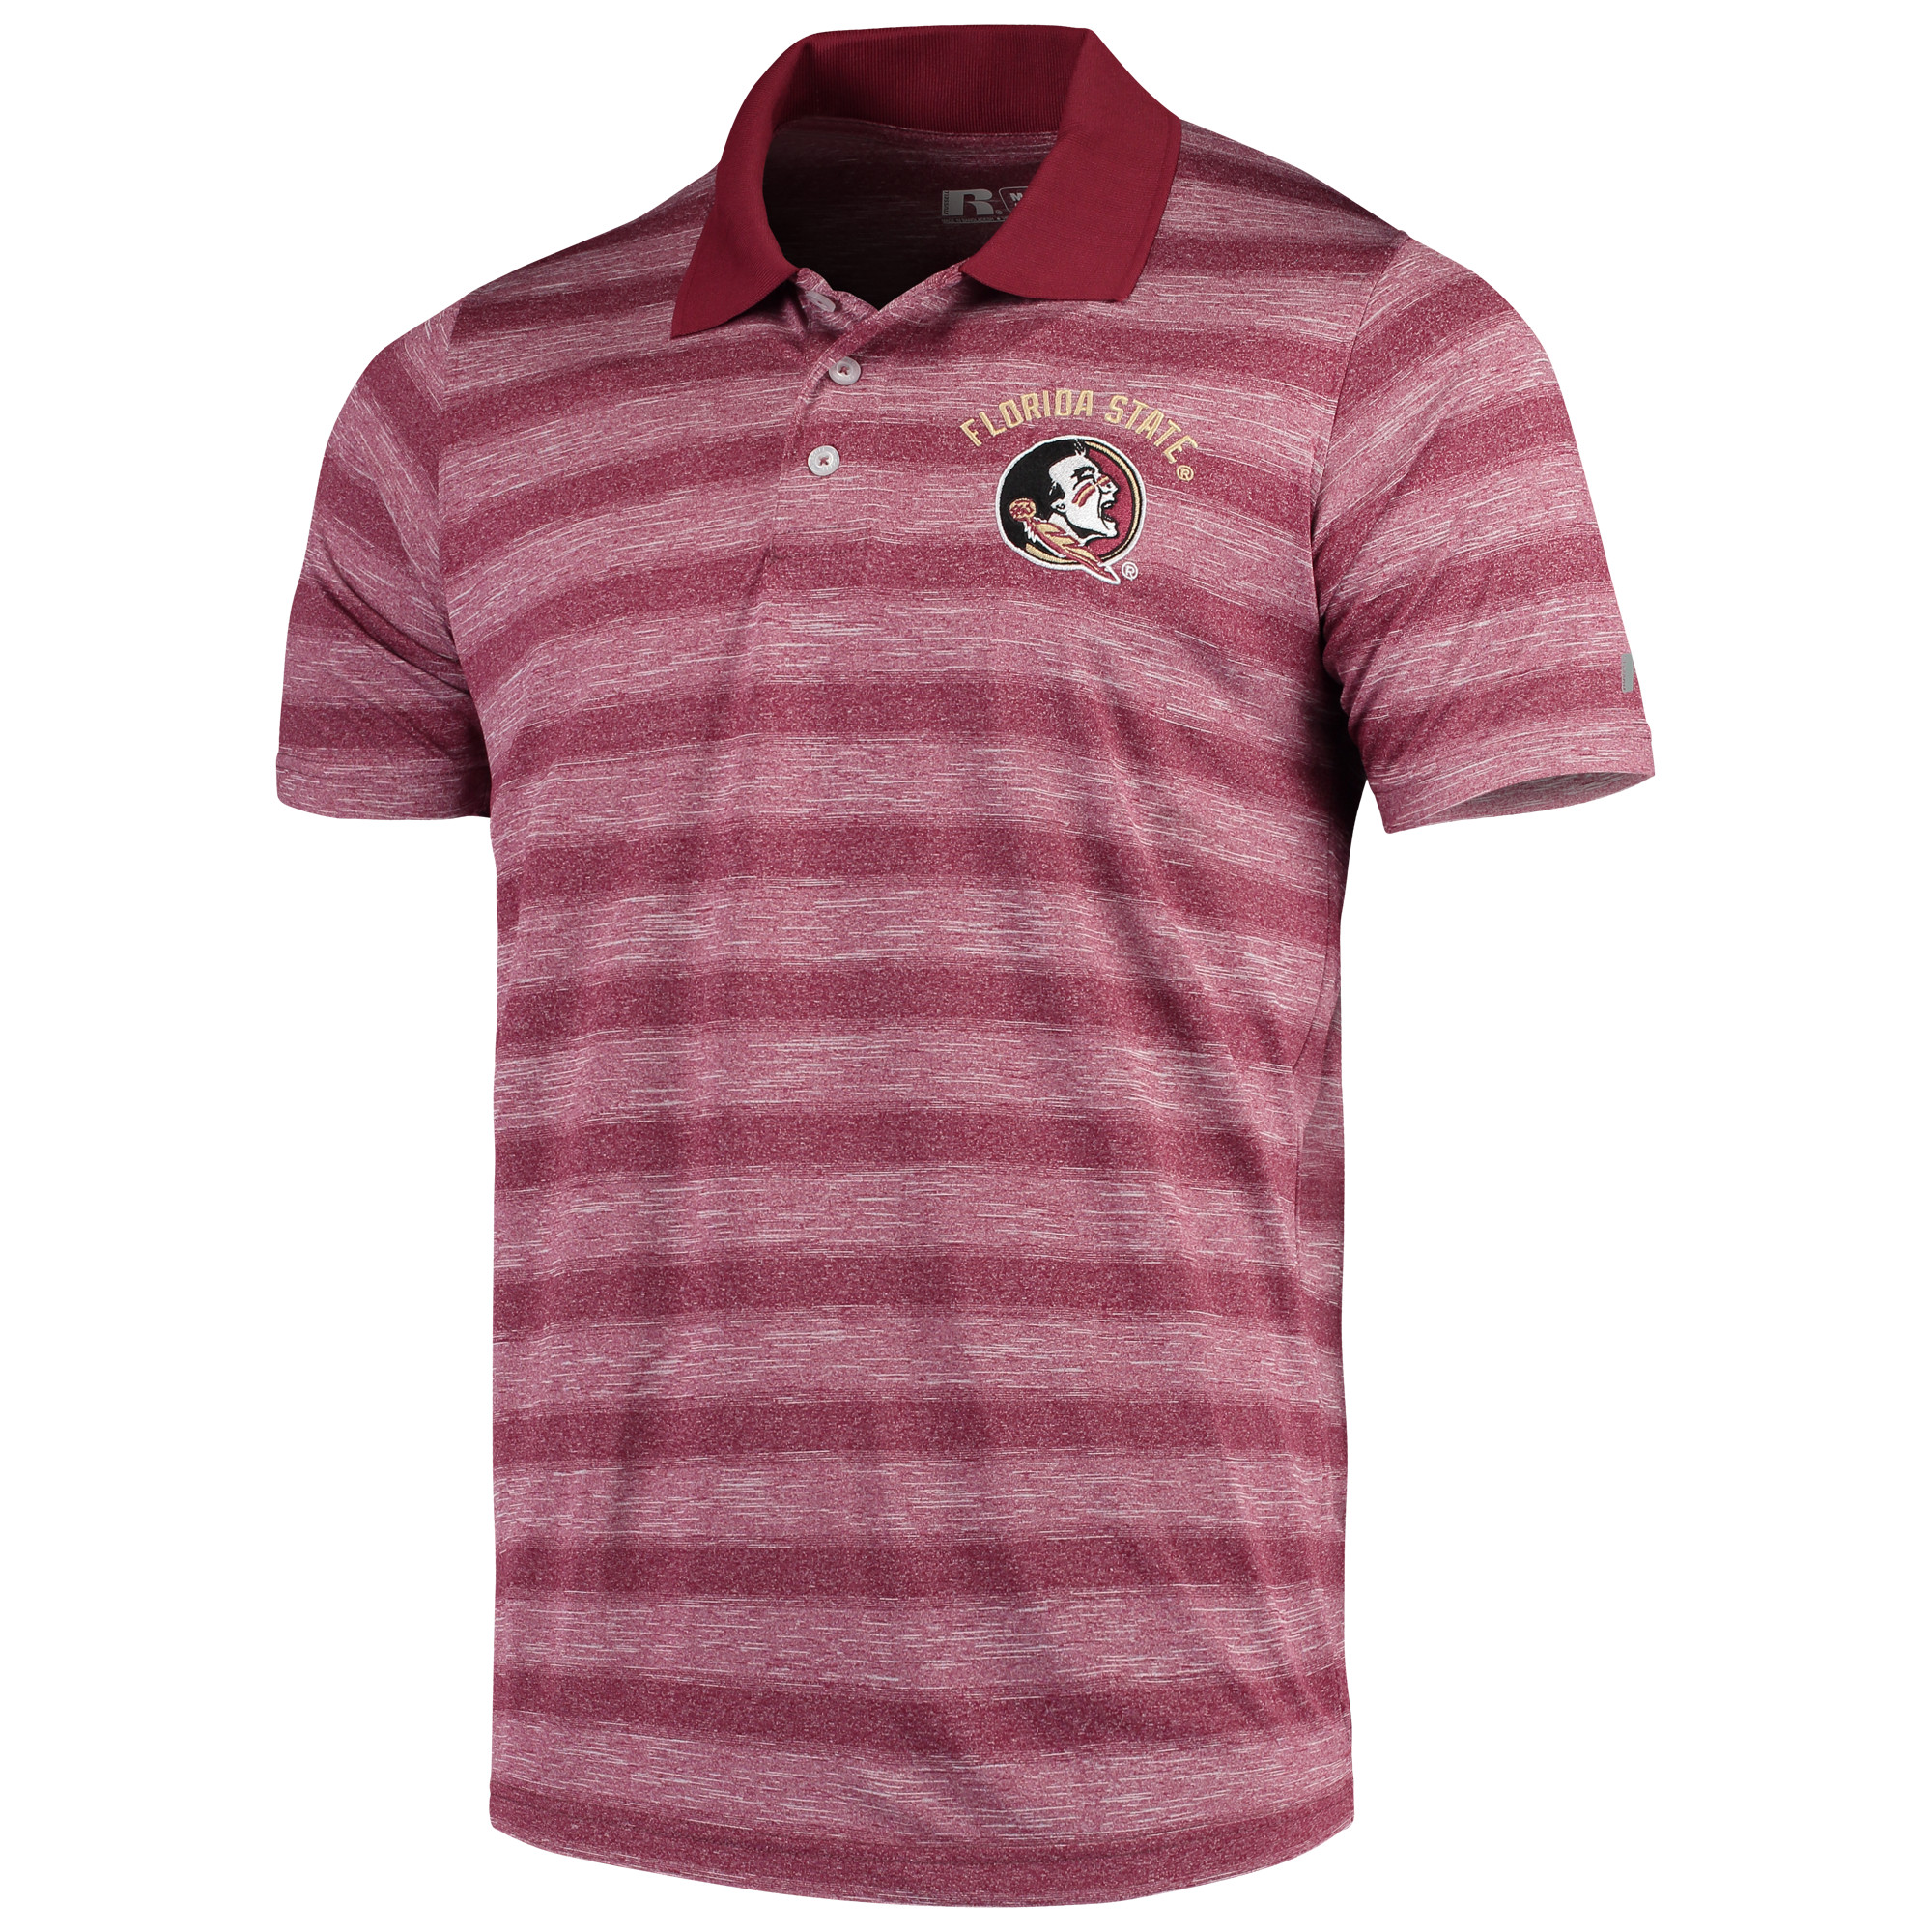 Men's Russell Garnet Florida State Seminoles Classic Fit Striped Synthetic Polo